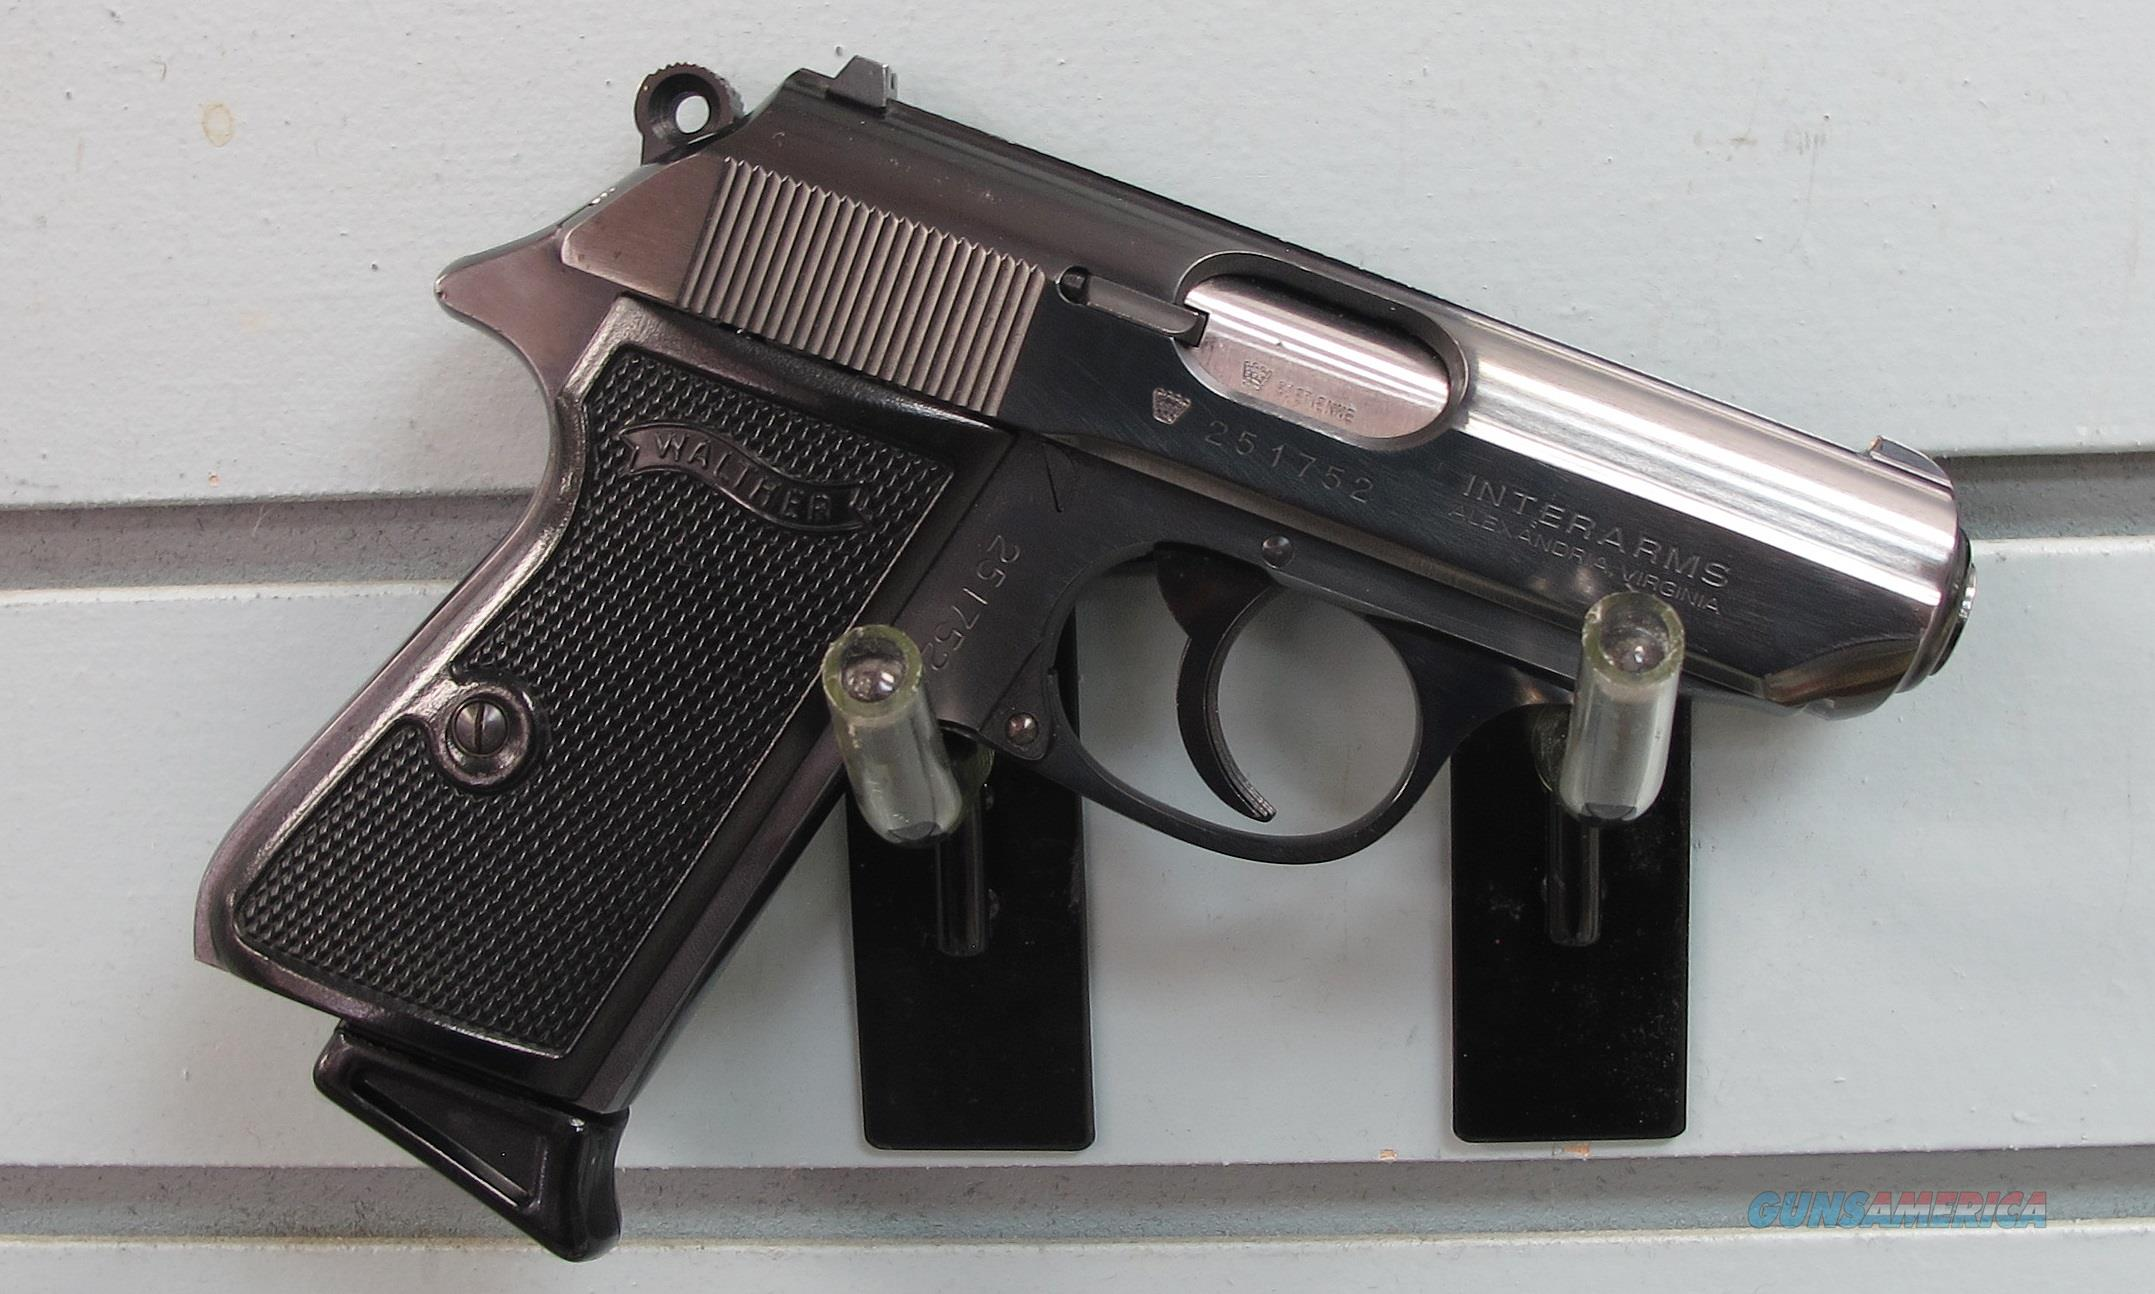 WALTHER PPK/S 380 PISTOL  Guns > Pistols > Walther Pistols > Post WWII > PPK Series